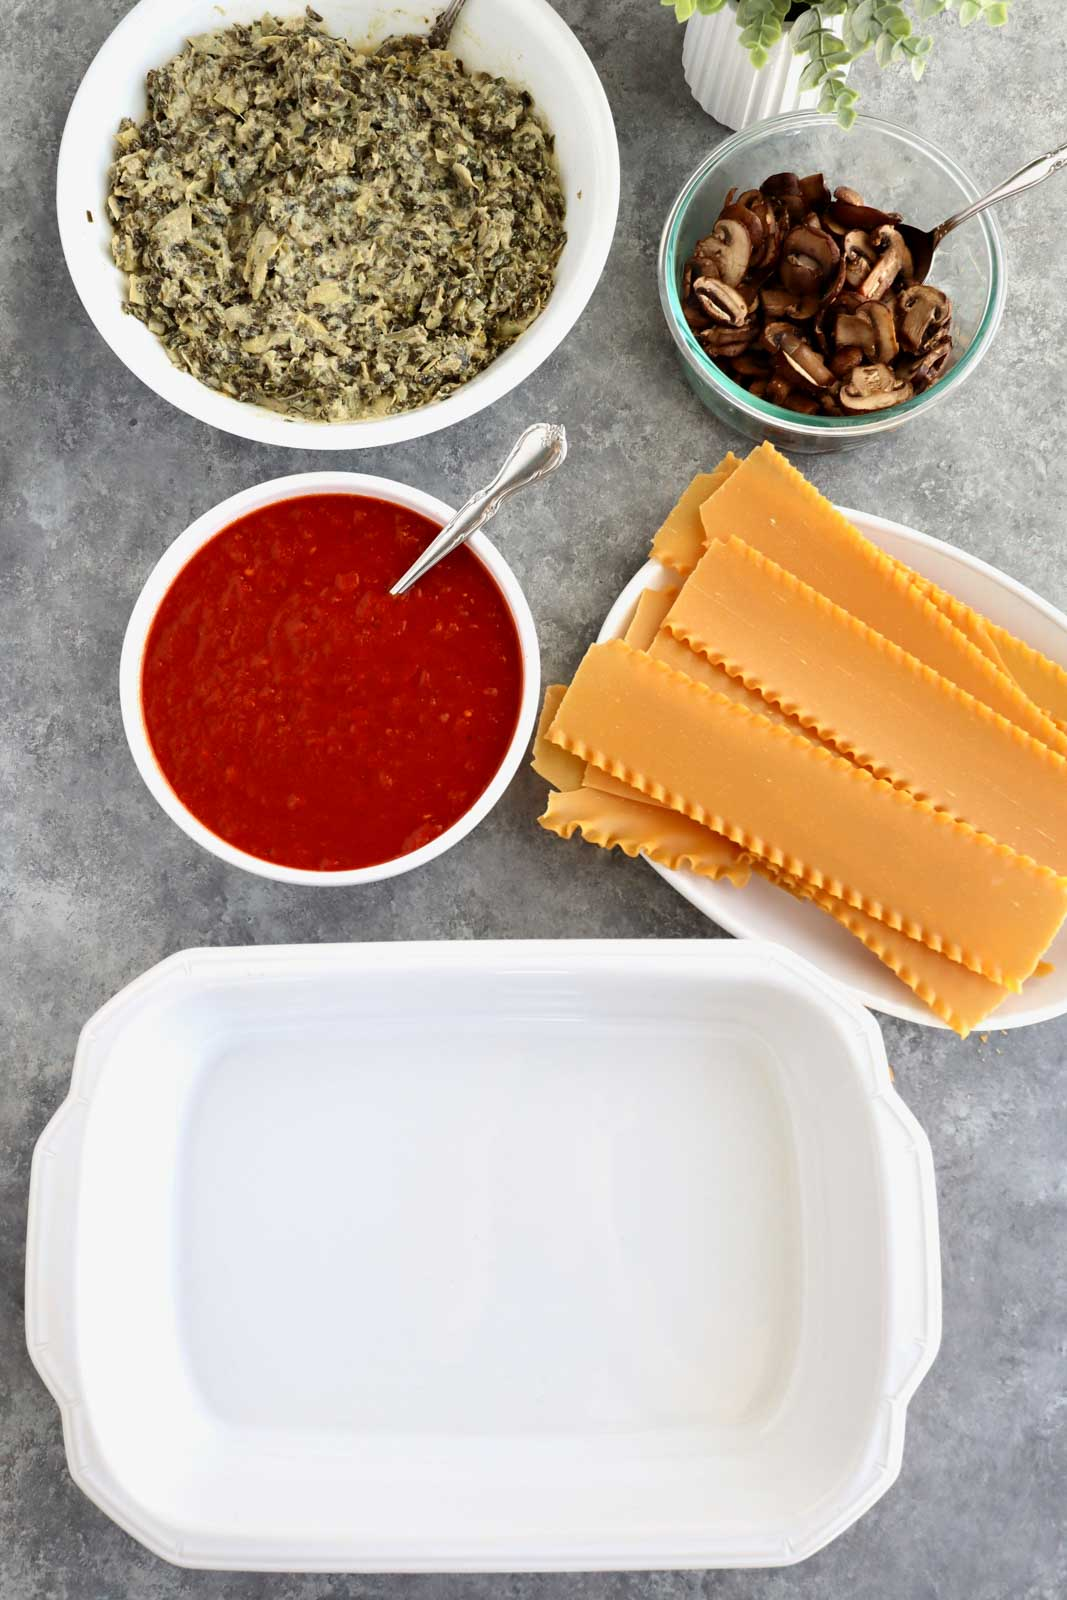 A white casserole dish, lasagna noodles, tomato sauce, mushrooms, and spinach dip in bowls.